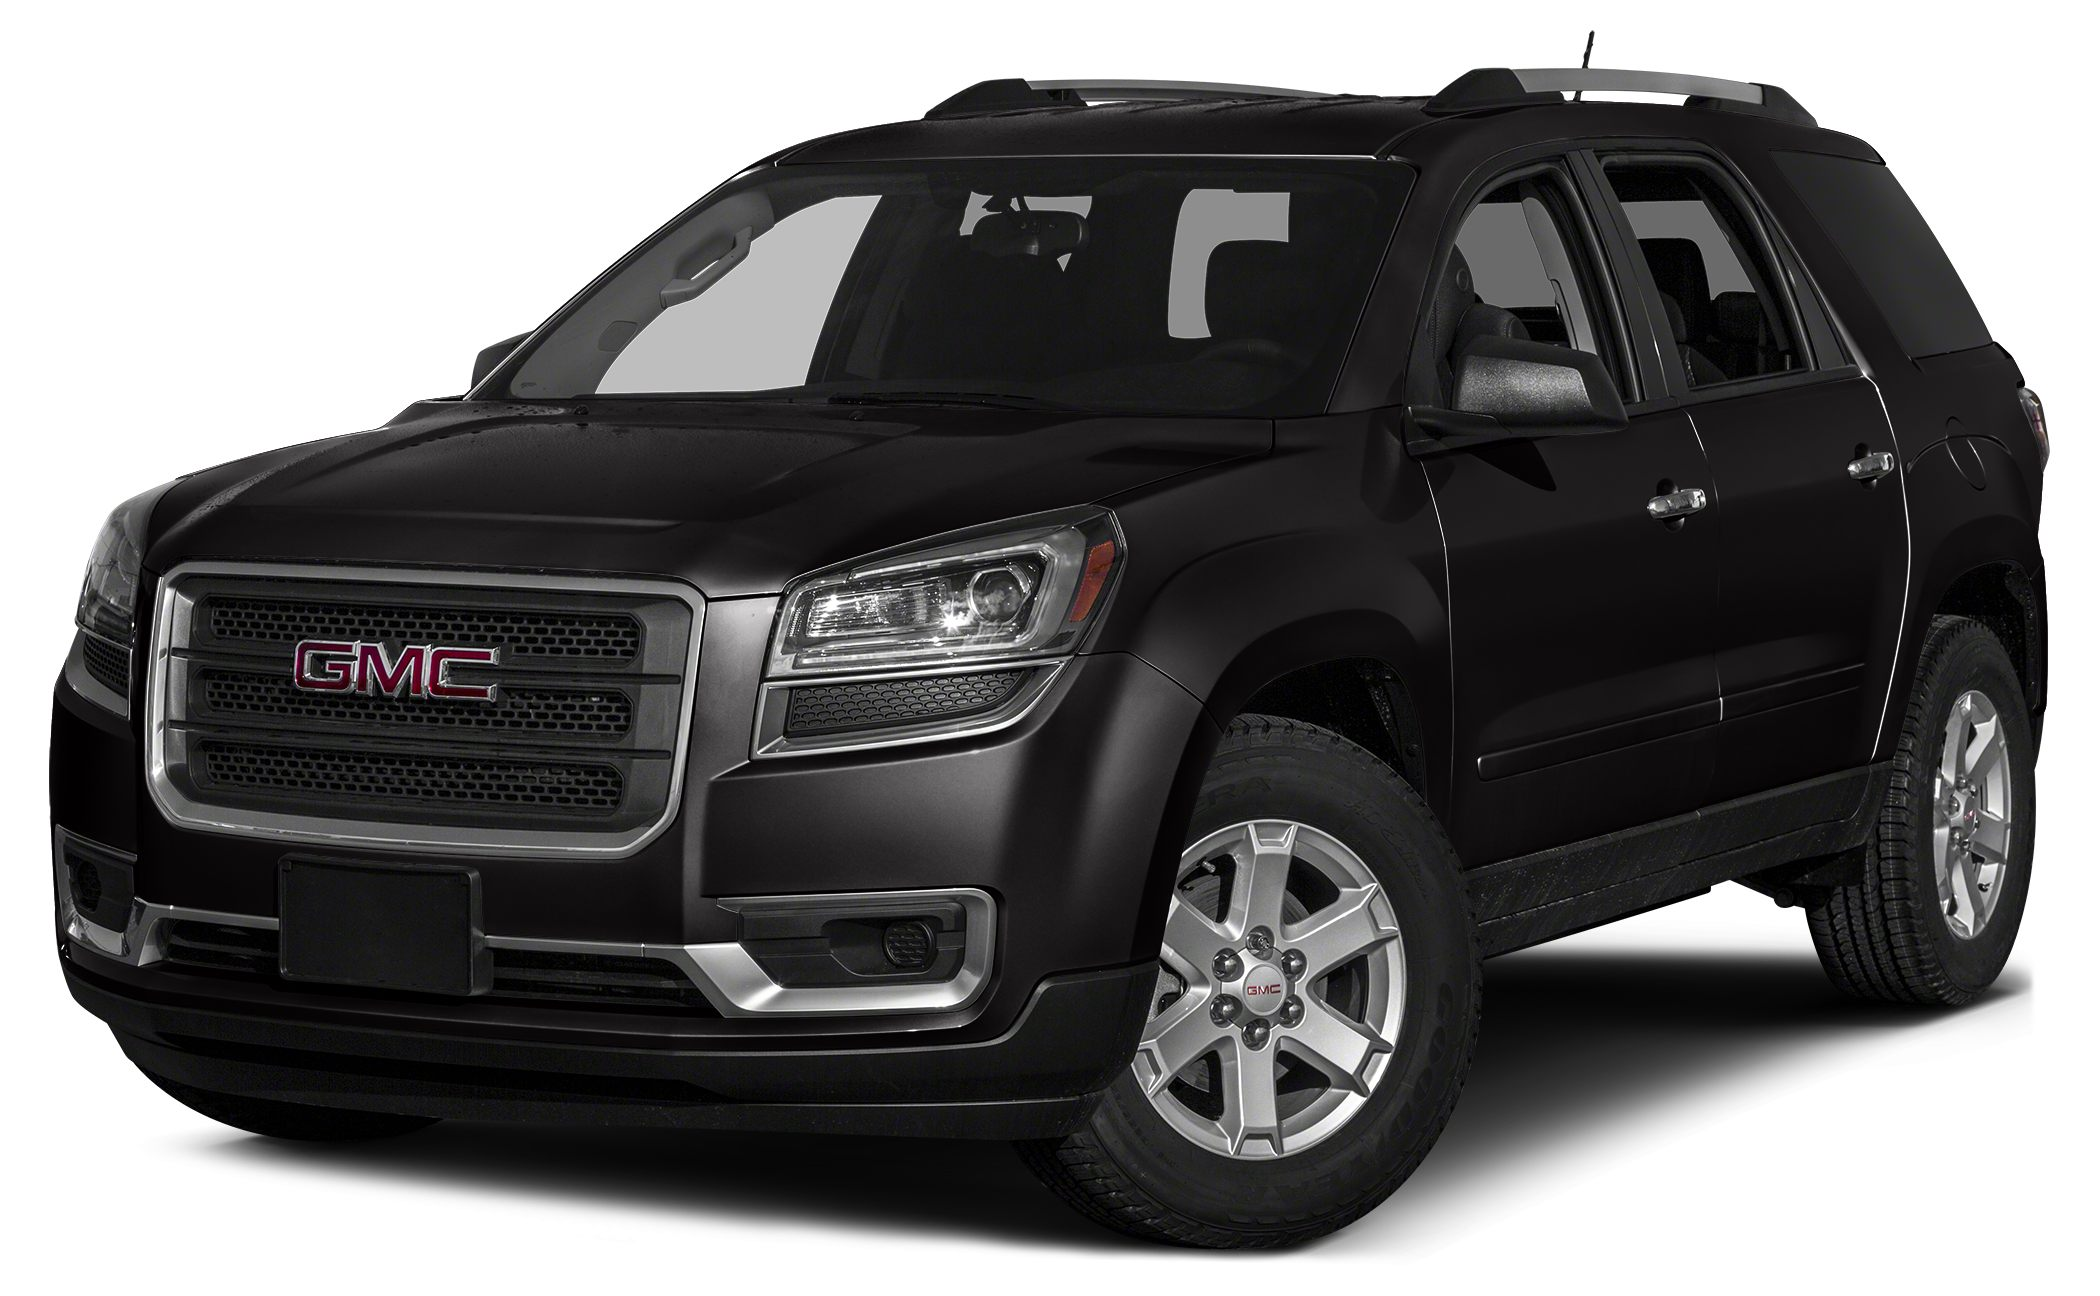 2013 GMC Acadia SLT-1 AWD SLT Carbon Black on Black Heated Leather Bluetooth Reverse Camera